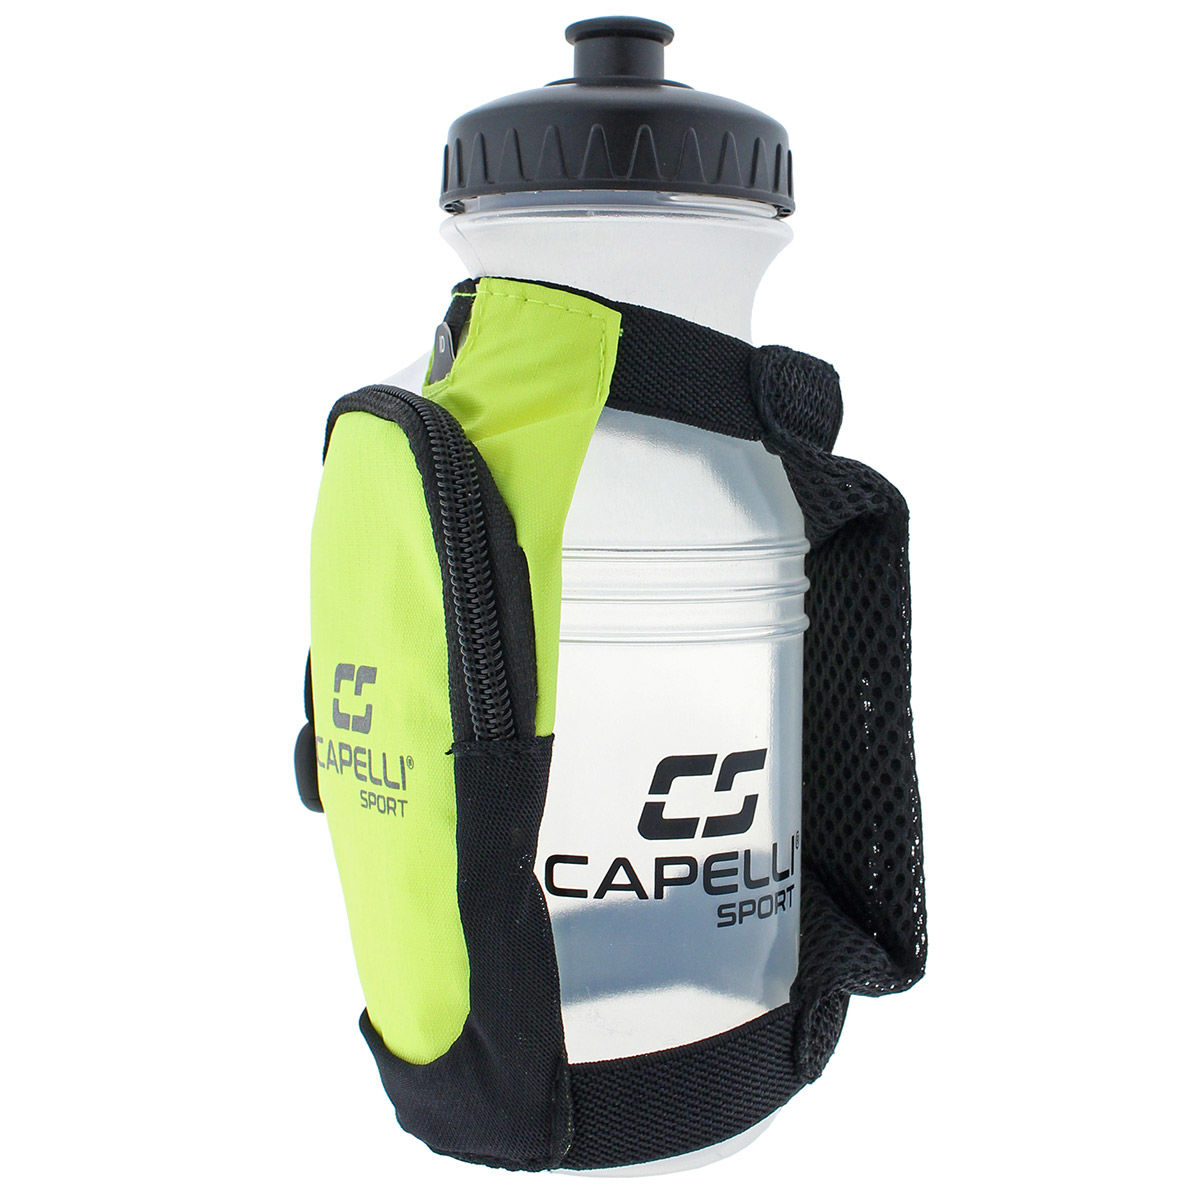 Capelli Sport Juno Grab and Go Performance Water Bottle